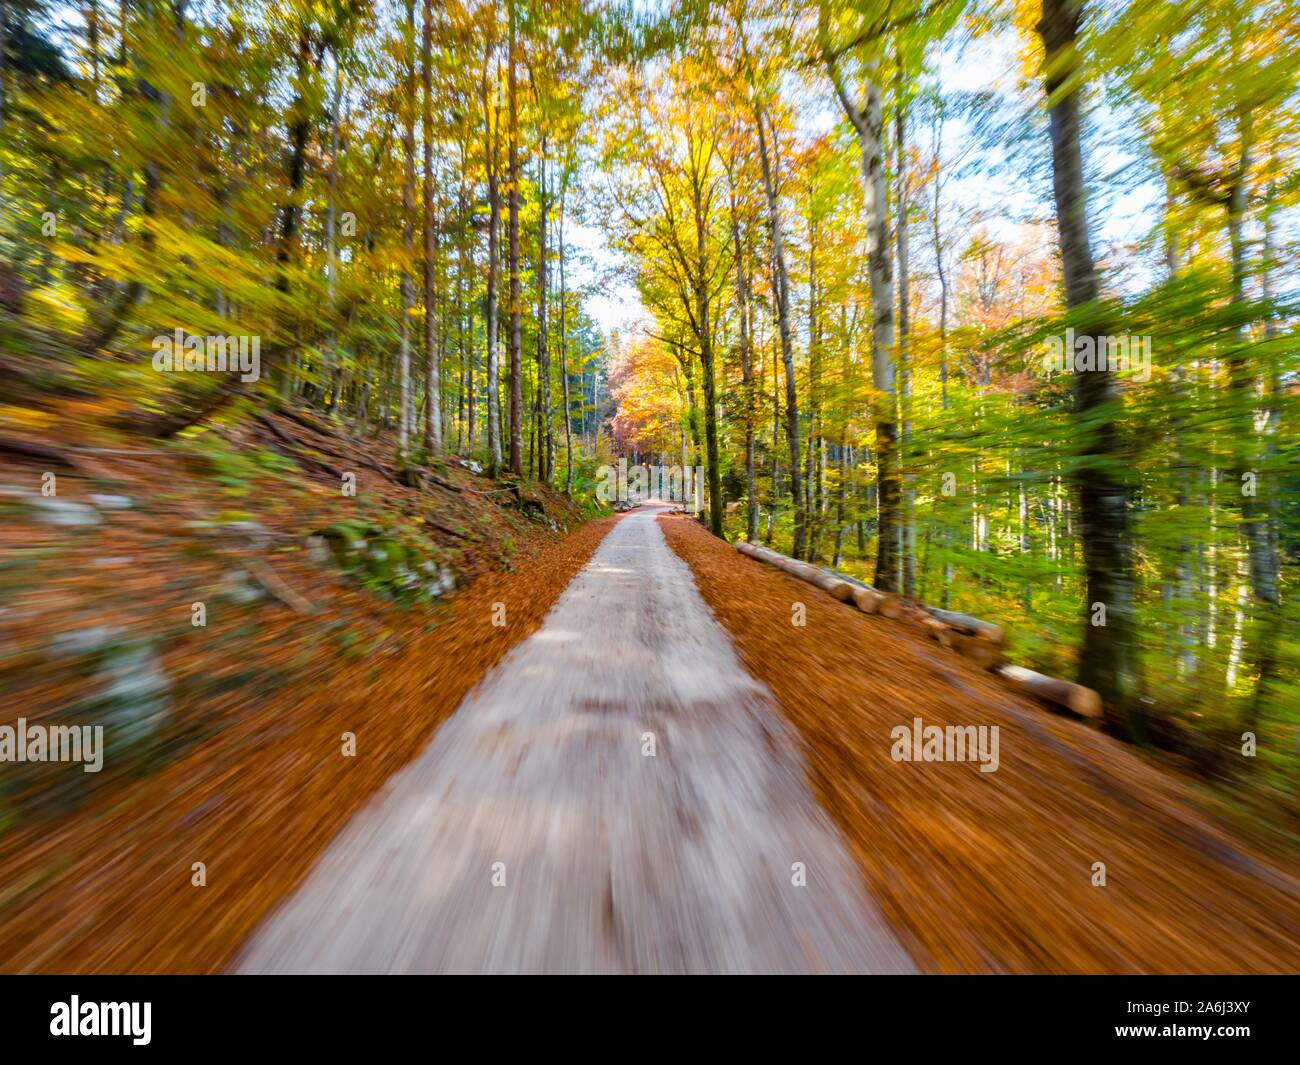 Fast driving through forest country-side countryside countryroad road intentionally blurry speeding blur unsharp Stock Photo